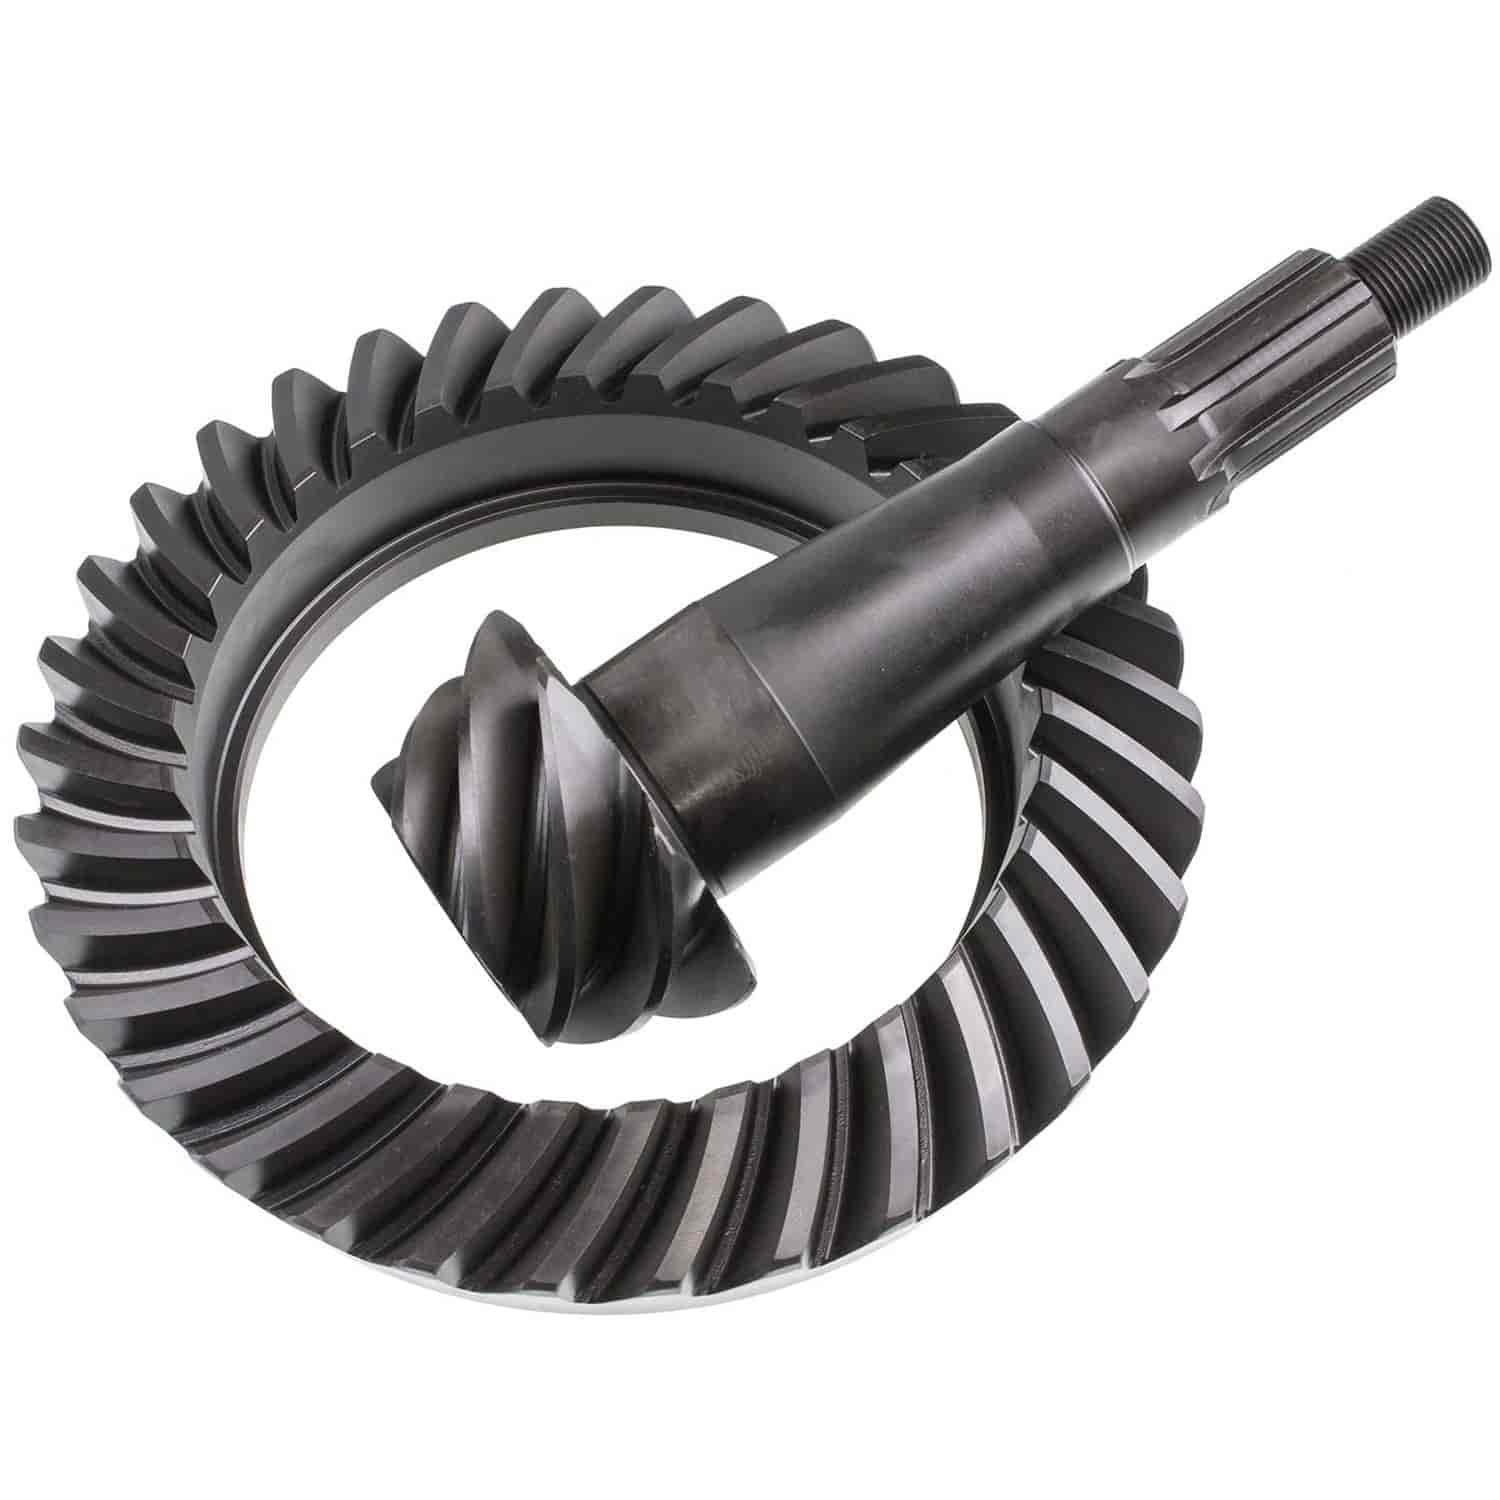 Richmond Gear 49-0153-1 - Richmond Gear Chrysler Ring & Pinion Sets